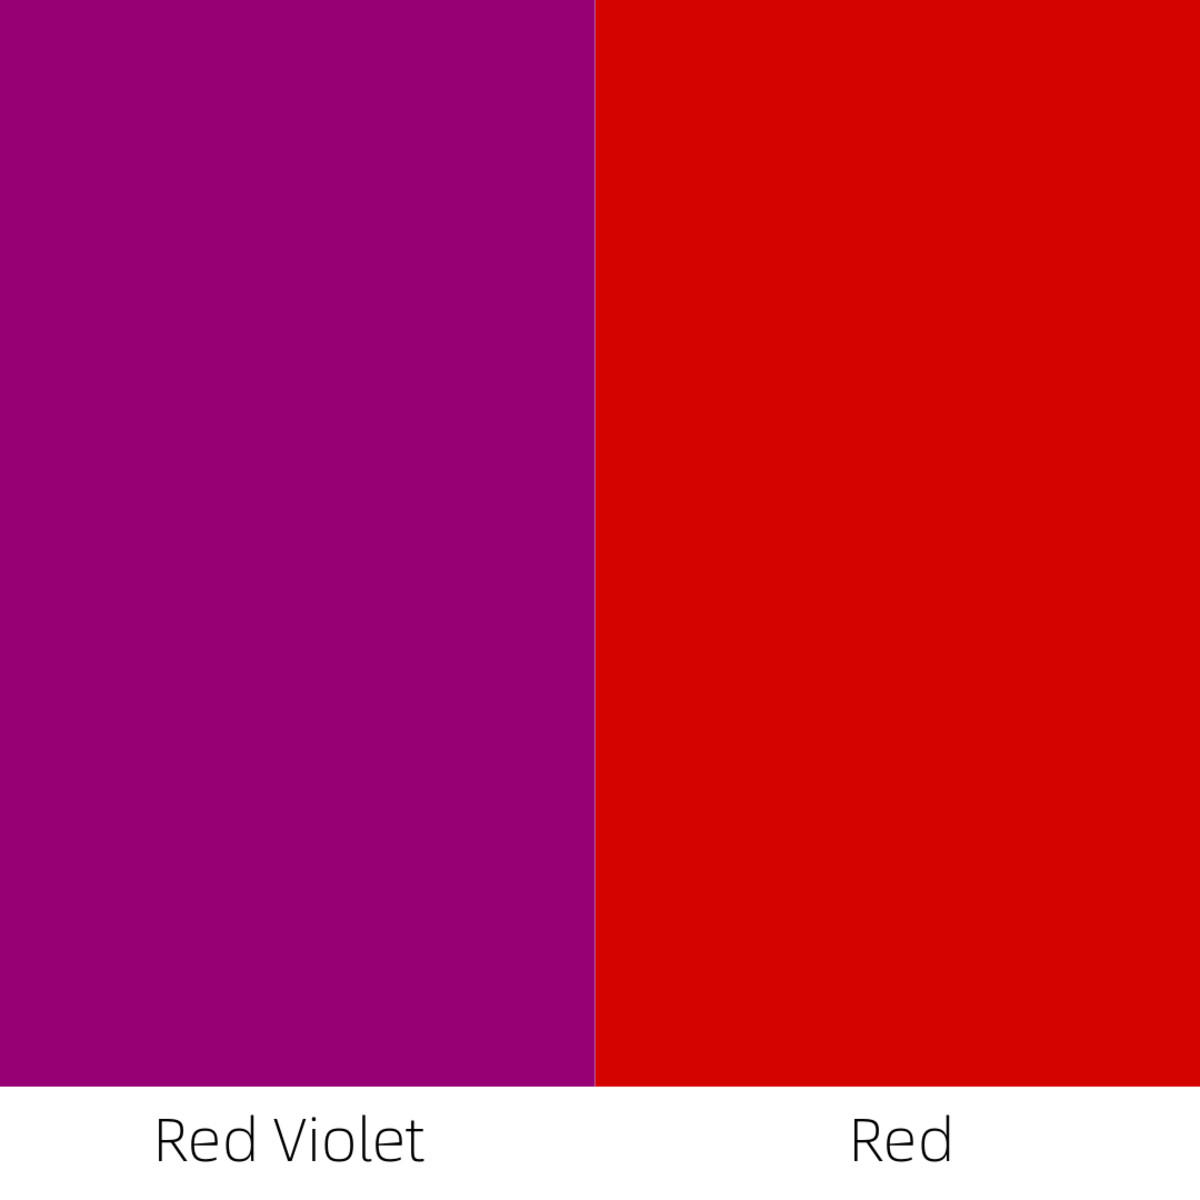 When you paint red-violet next to red, then the red-violet appears cooler, because it contains some blue.